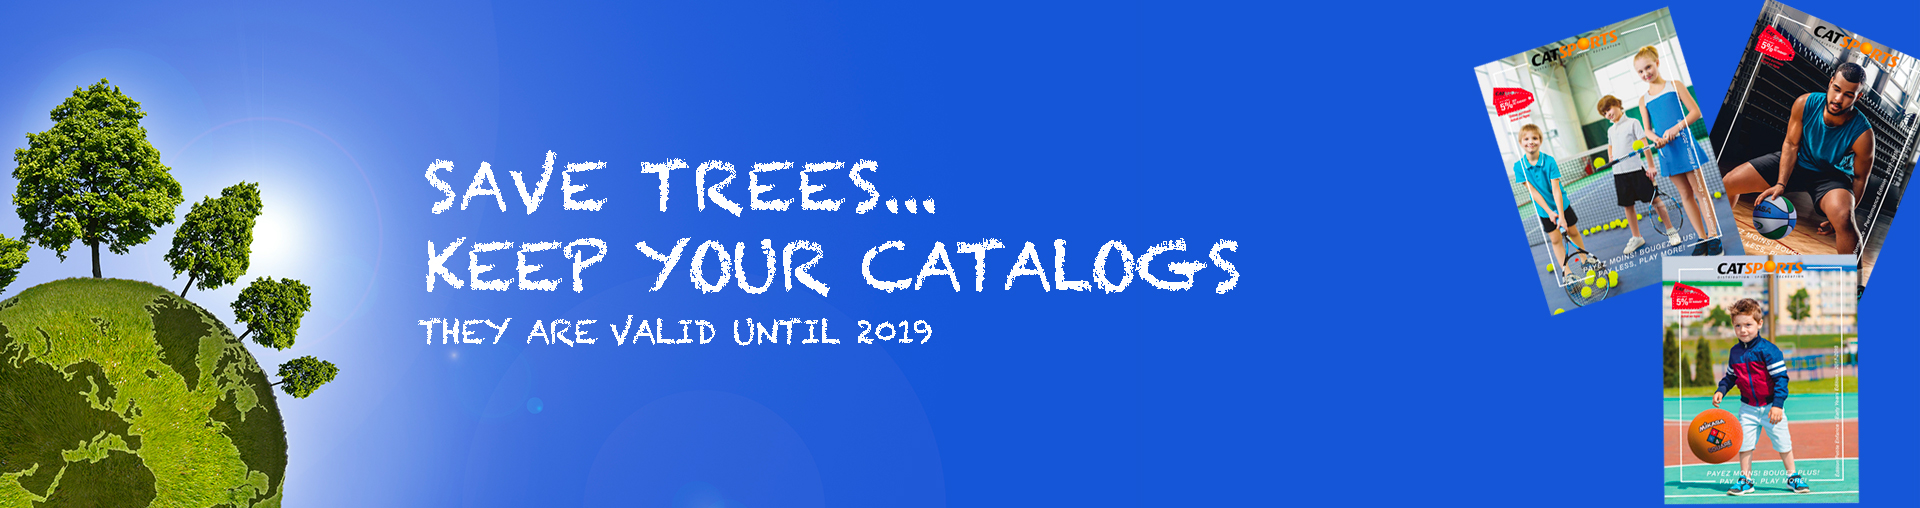 Keep-your-catalogs